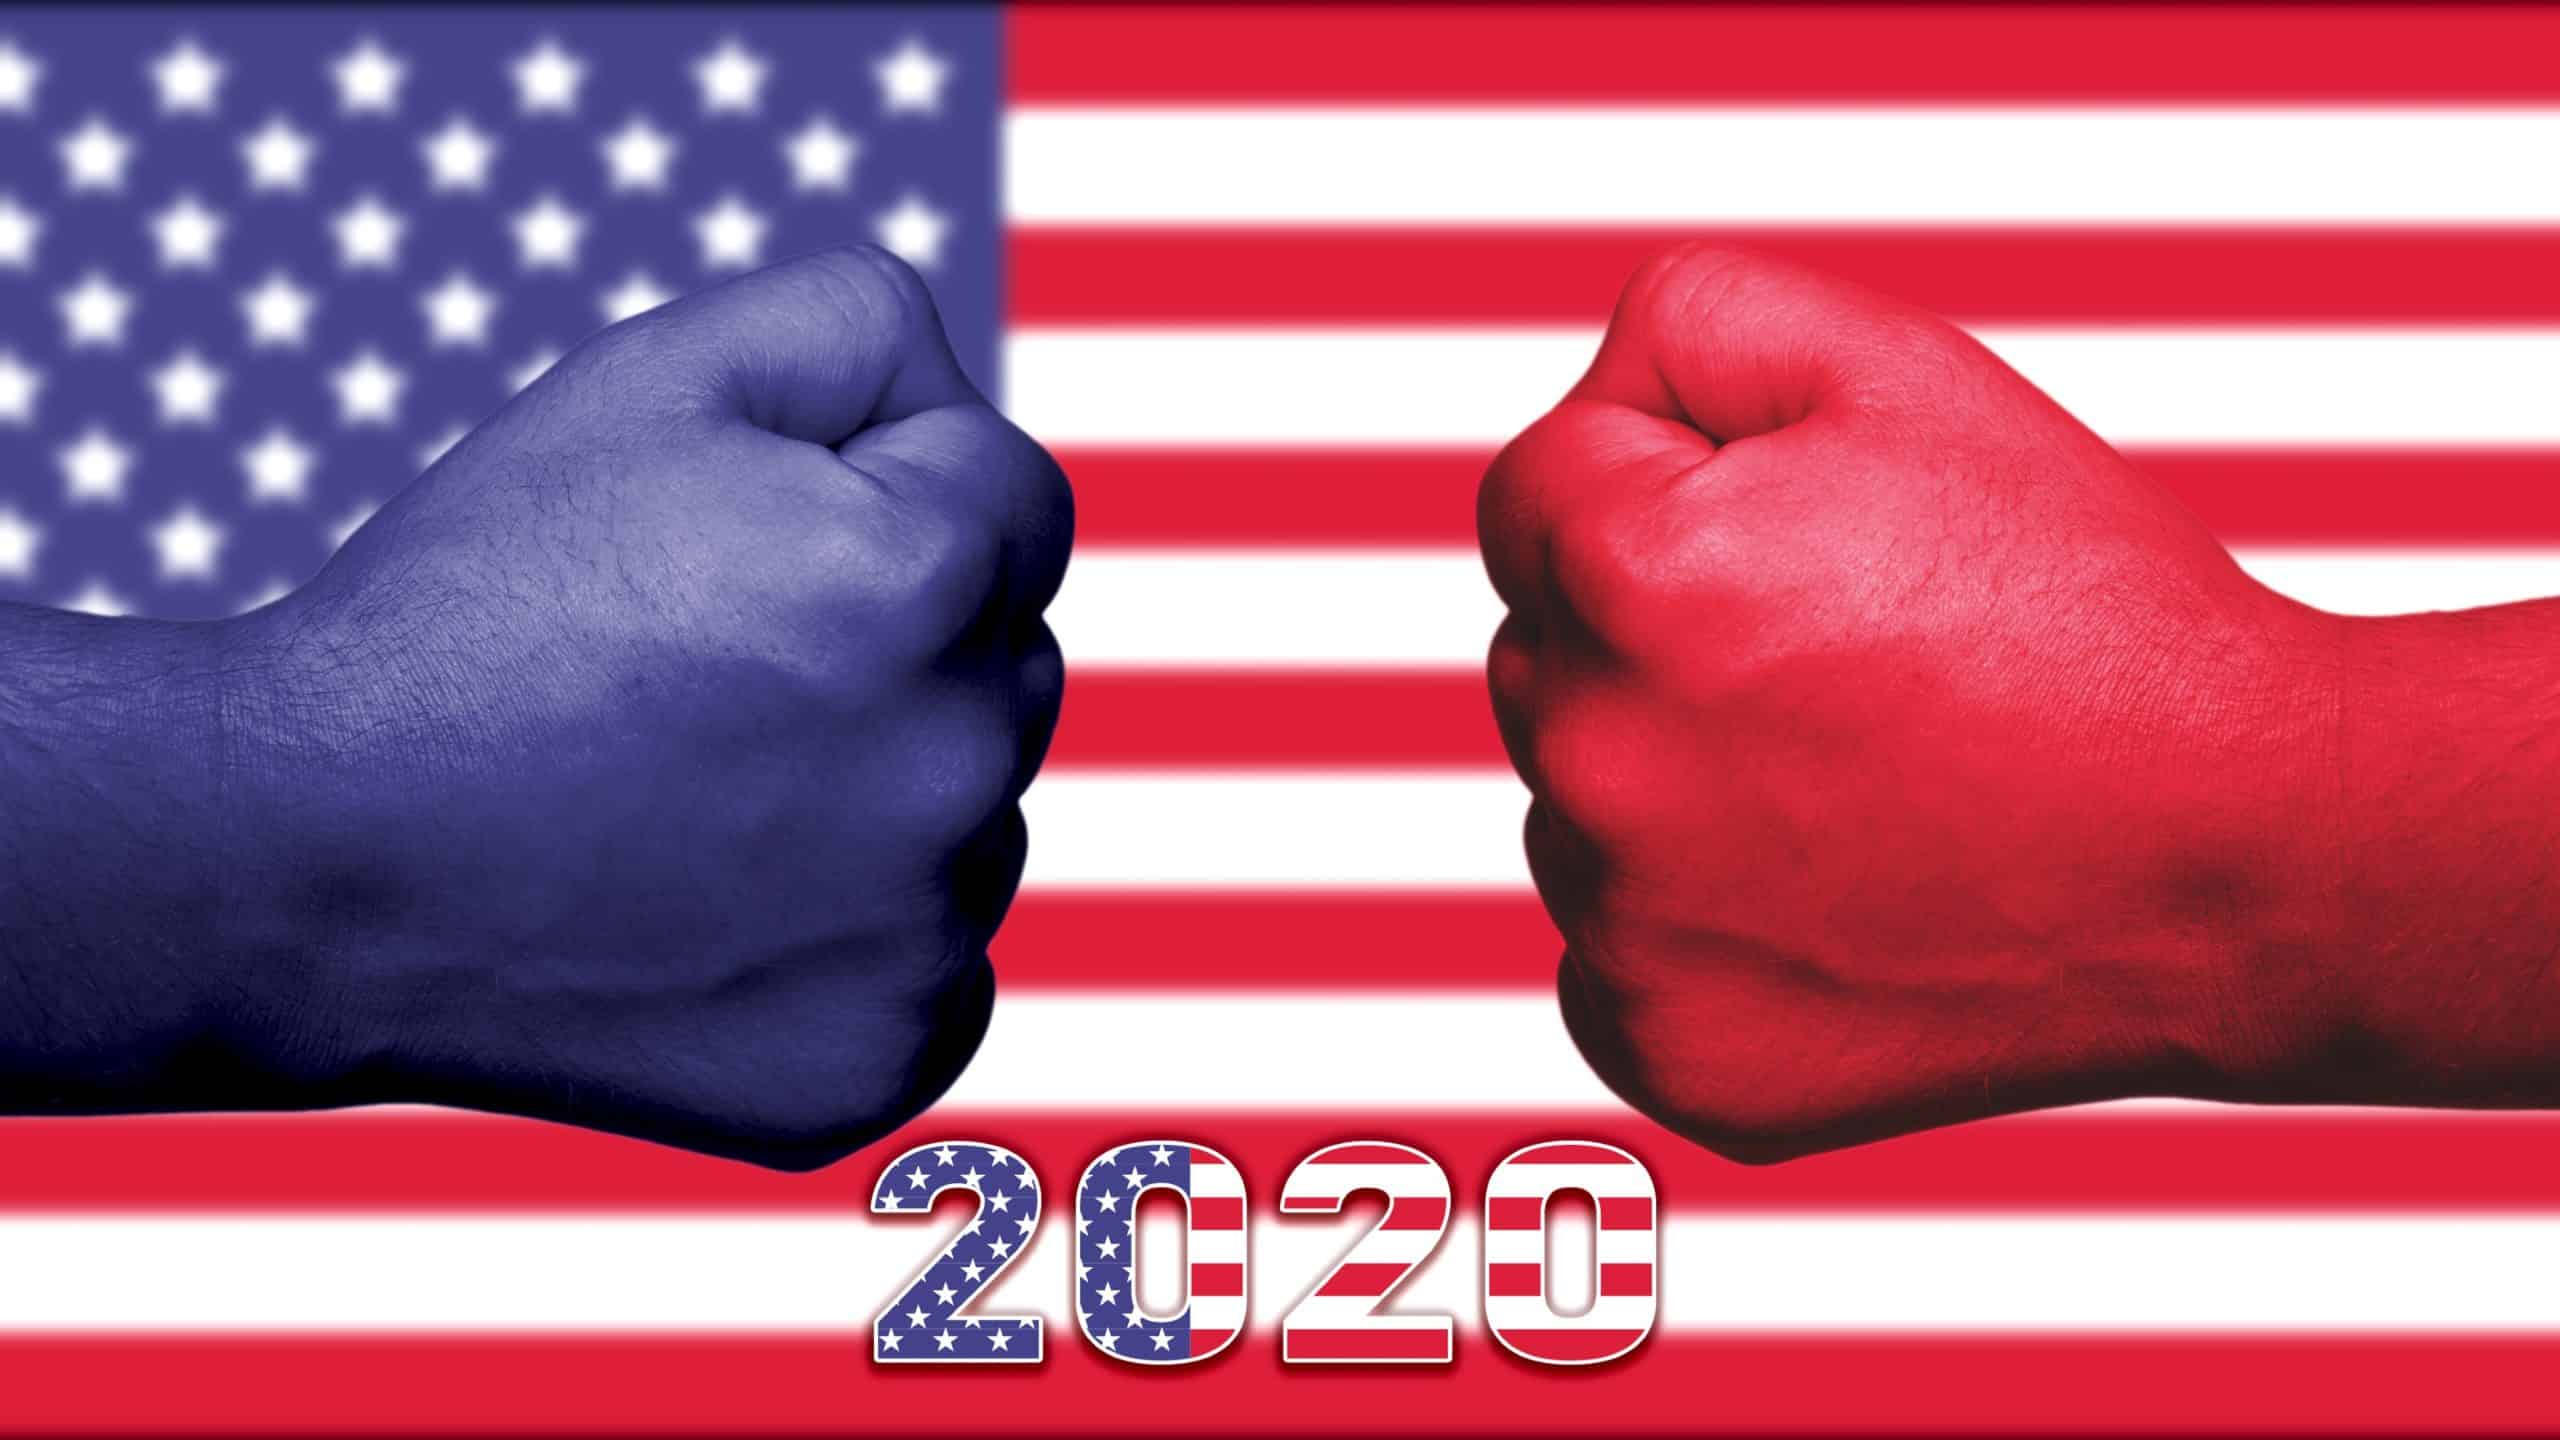 shares to buy in US election represented by blue and red fists coming together against backdrop of US flag